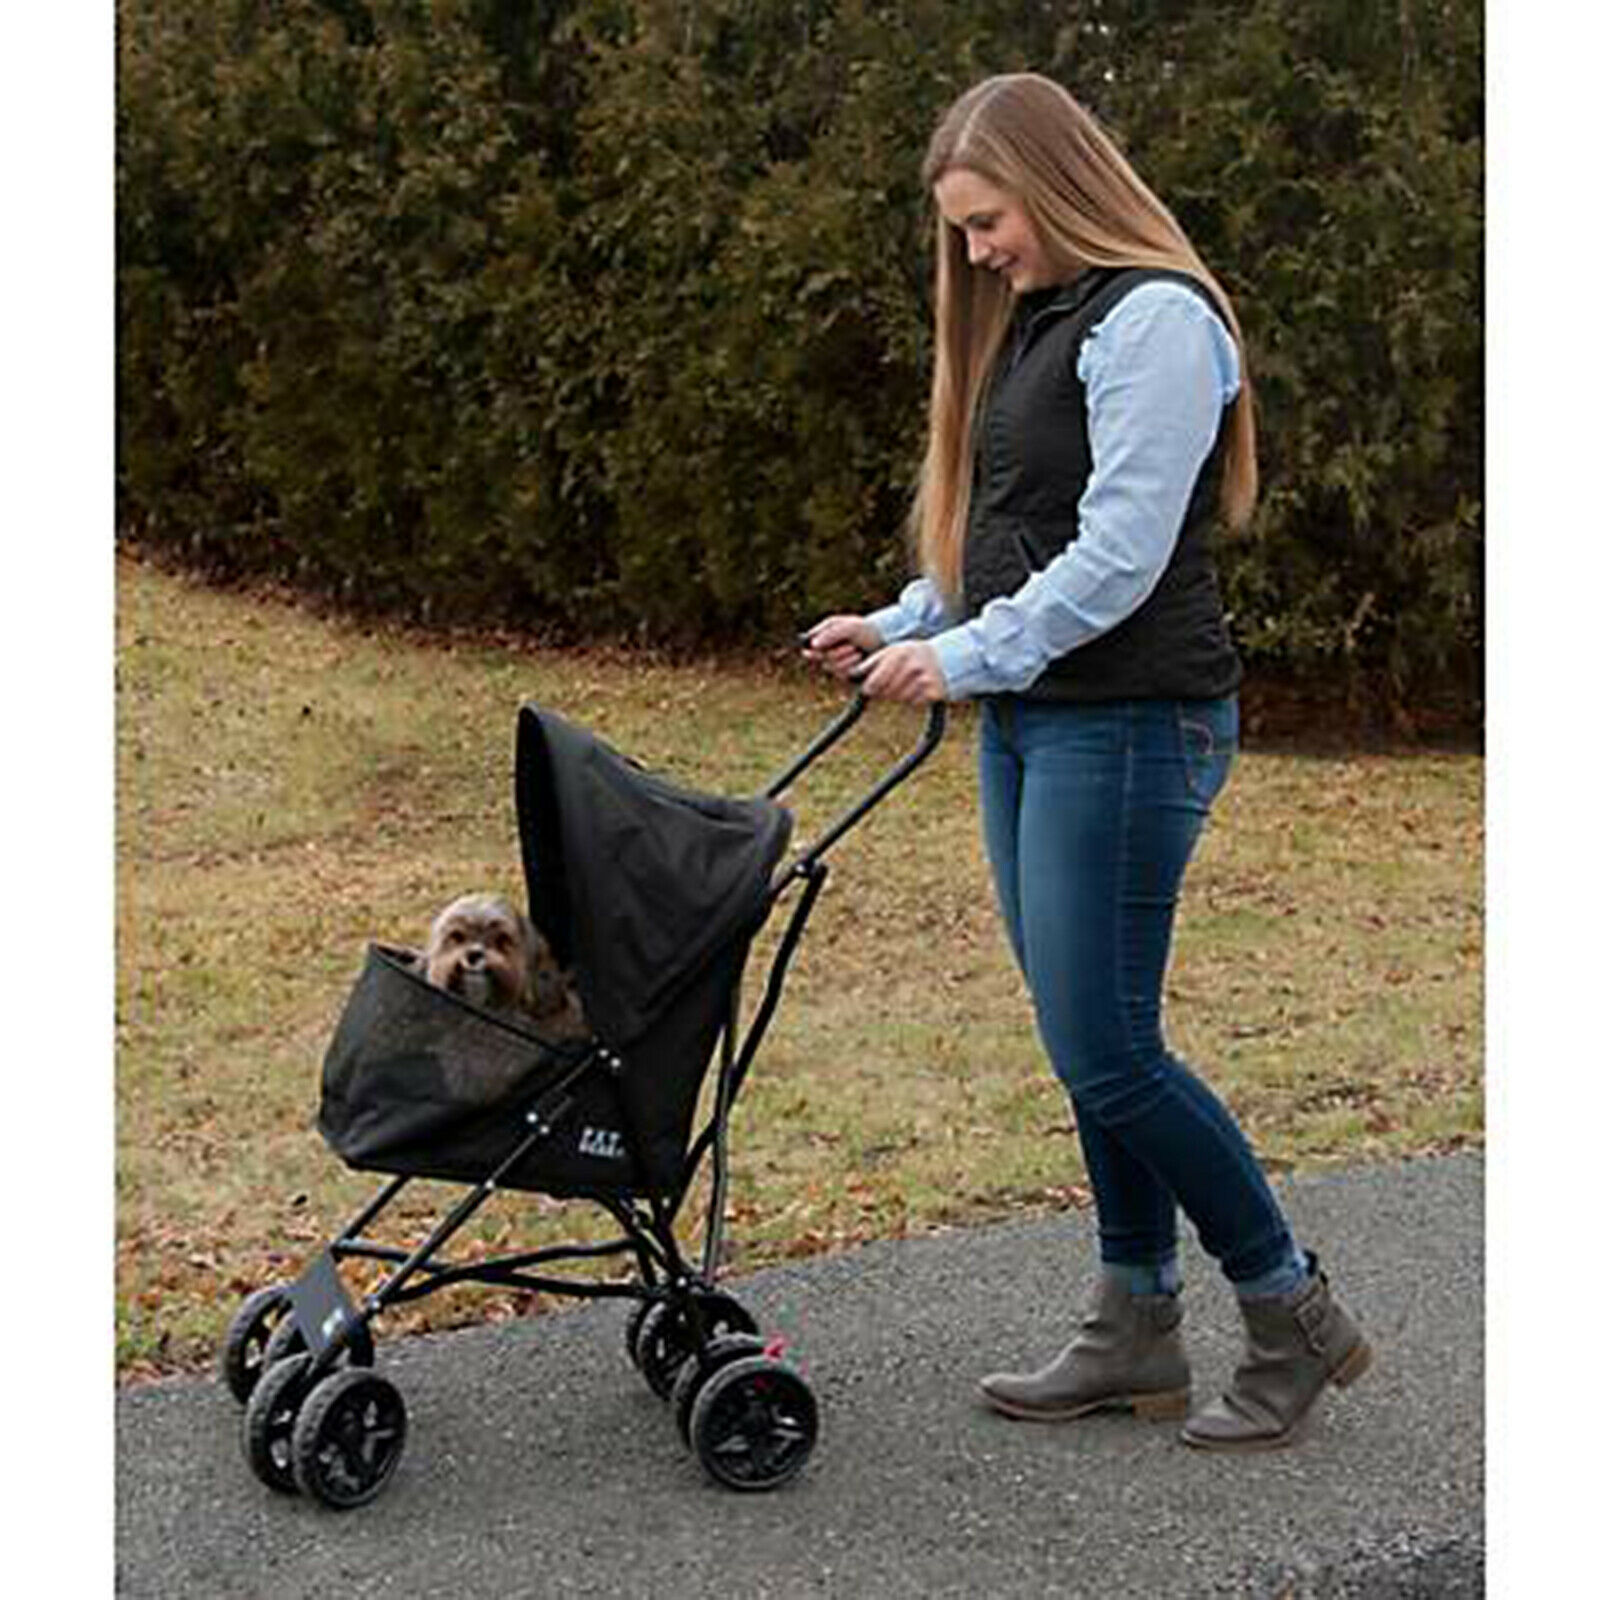 Pet Stroller for Cats and Dogs up to 15-pounds Walk Folding